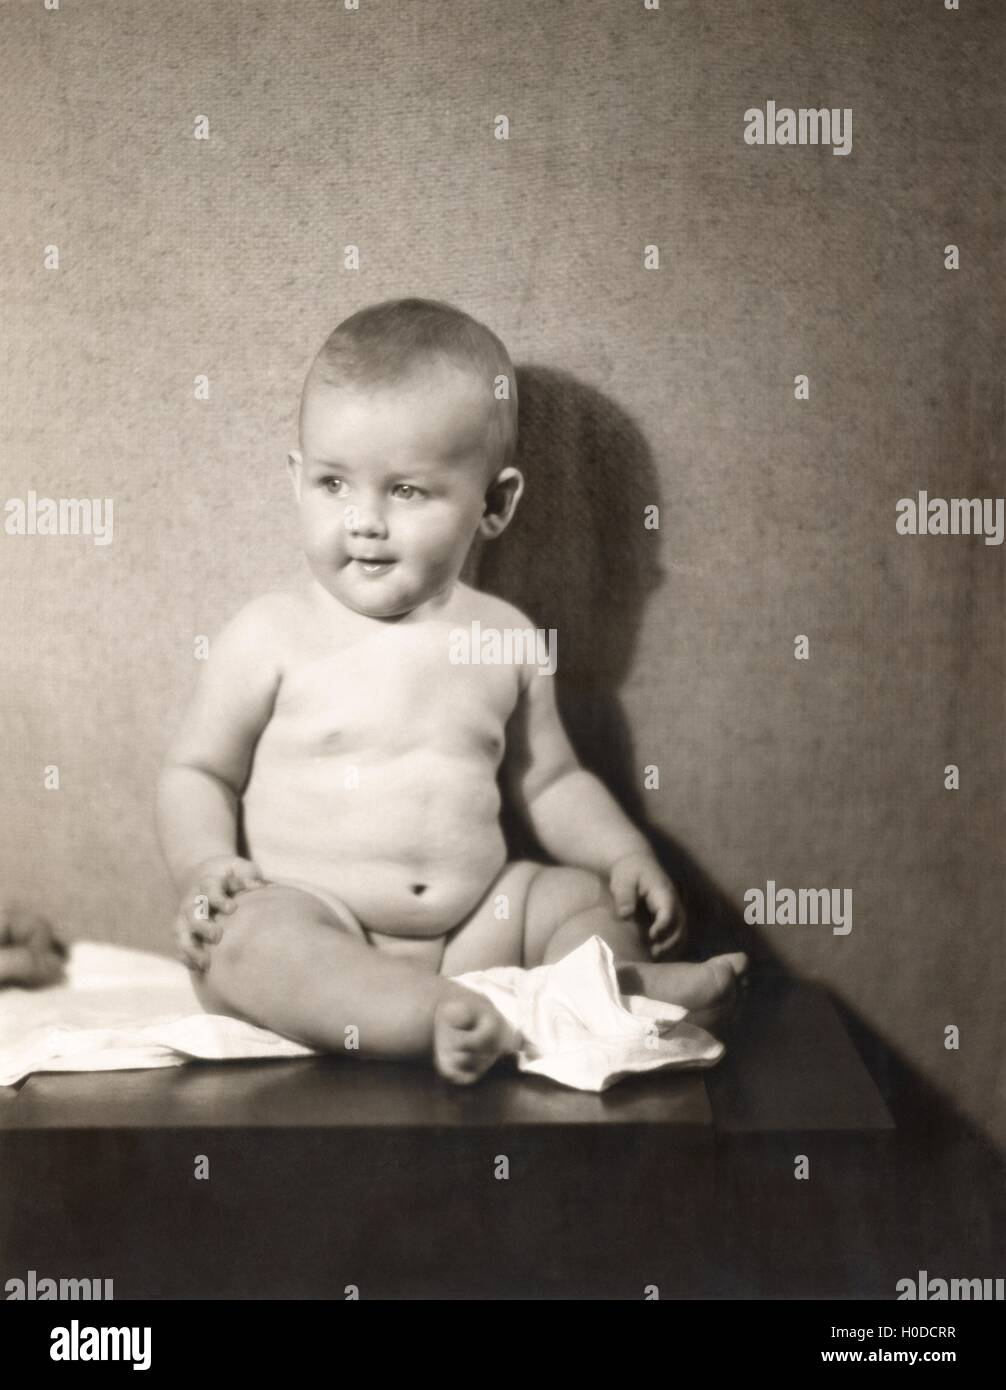 Chubby baby boy sitting on table with diaper off - Stock Image